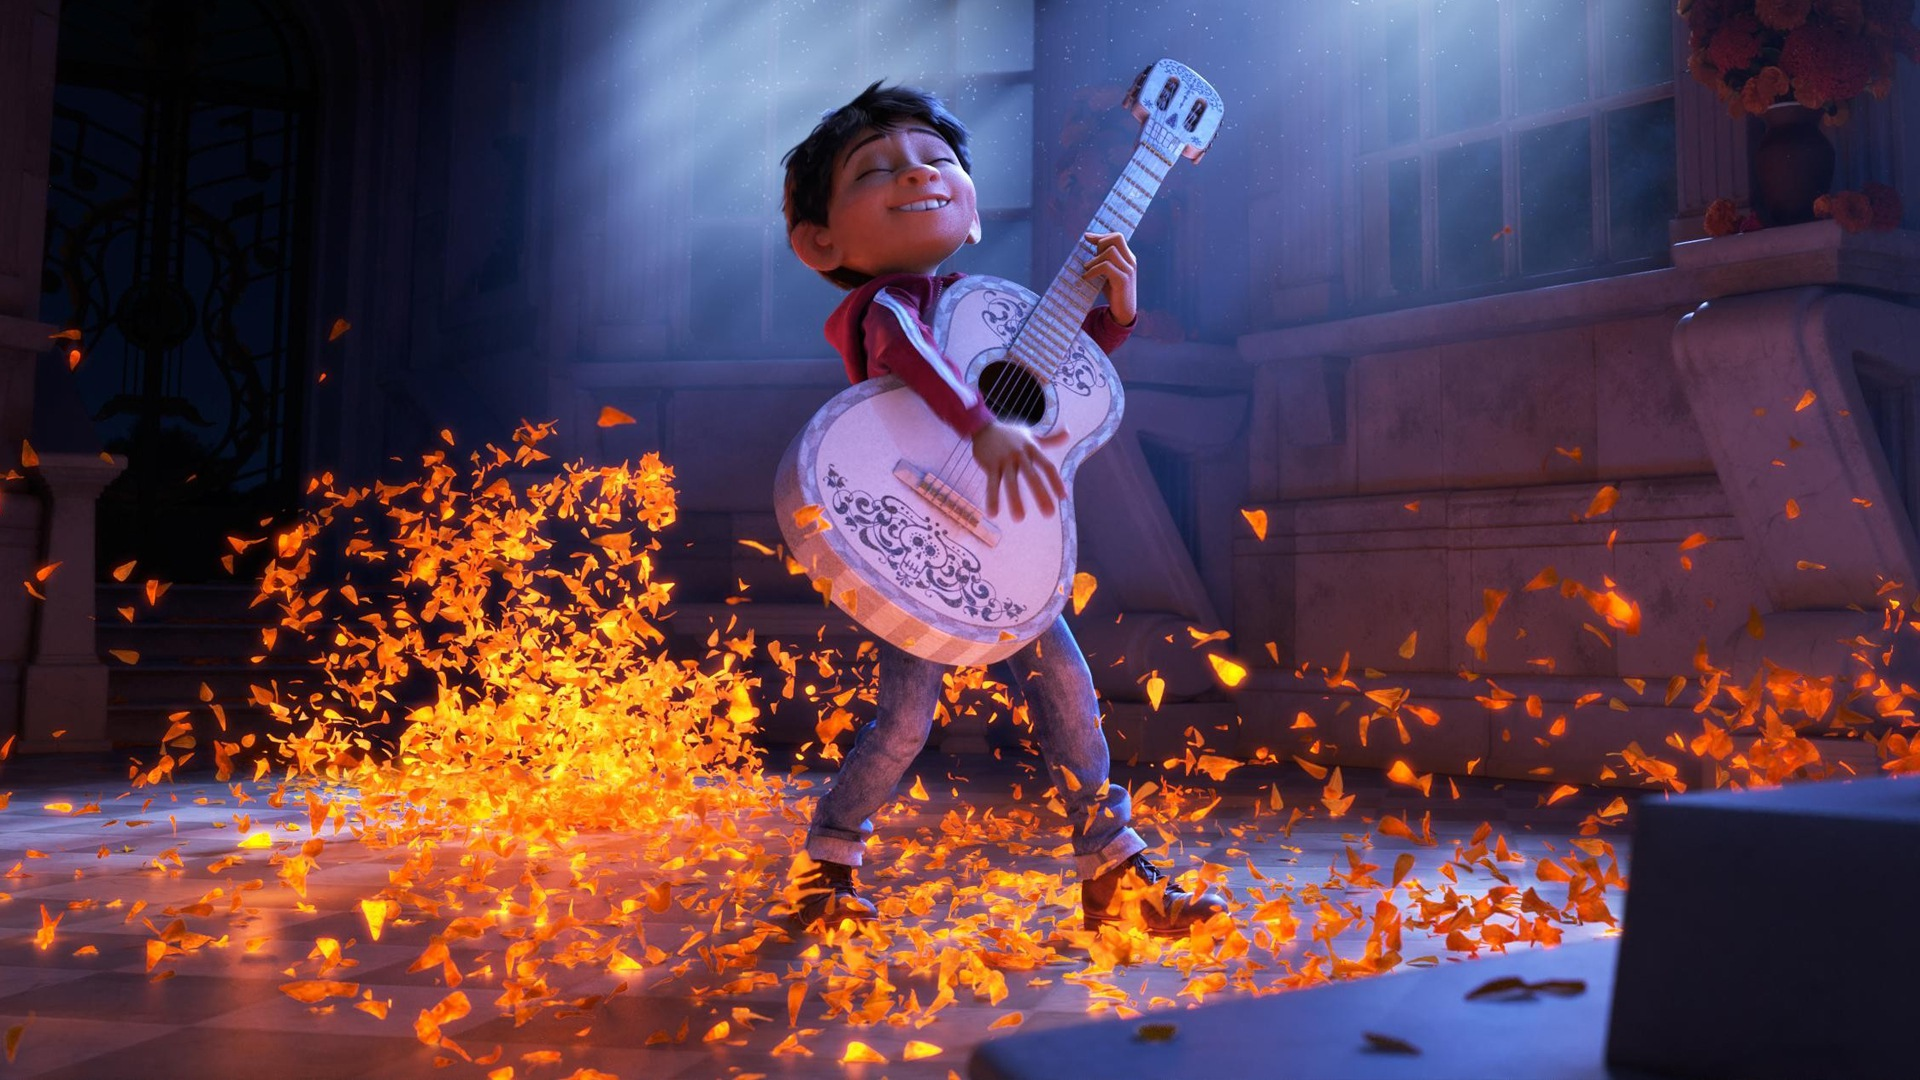 Coco Movie Review 2017 Remember the Forgotten Straight From 1920x1080